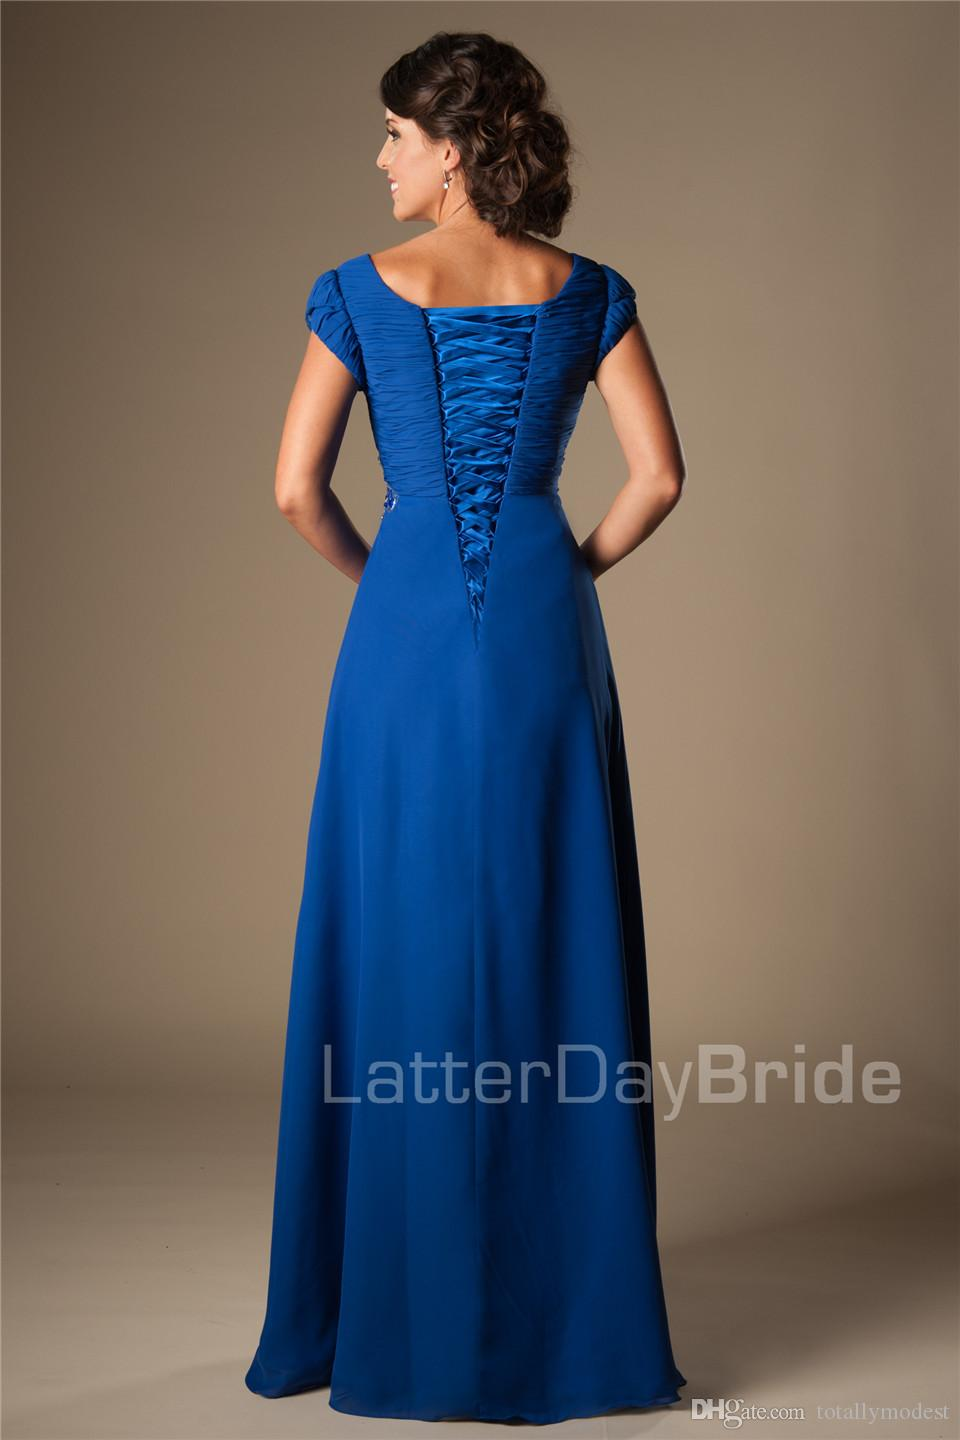 Long Coral Beaded Chiffon Modest Prom Dresses With Cap Sleeves A-line Floor Length Party Dresses Ruched Girls Formal Evening Wear Hot